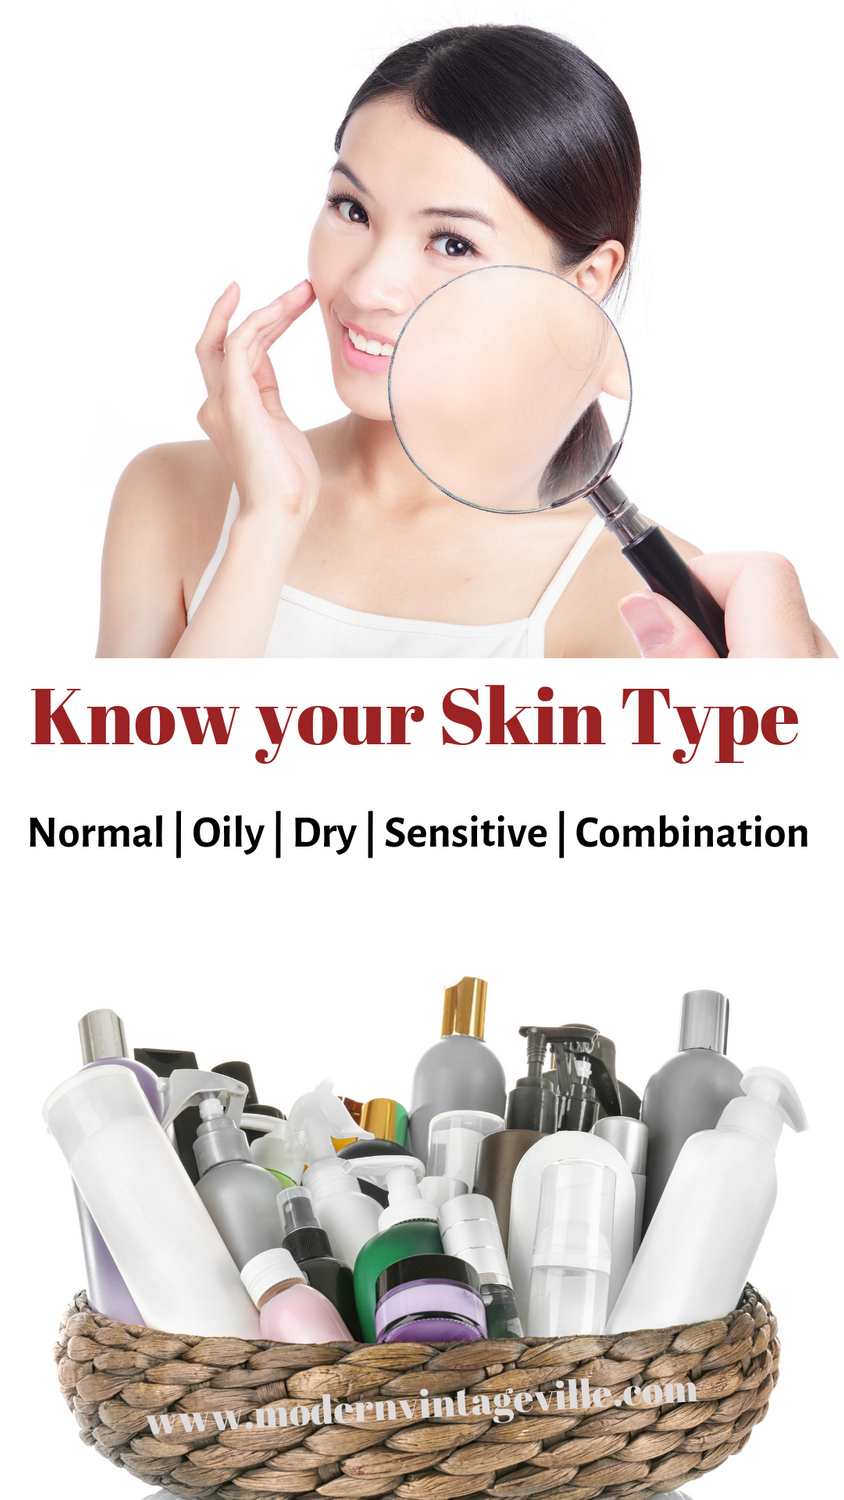 Why knowing your skin type is the very first step in skin